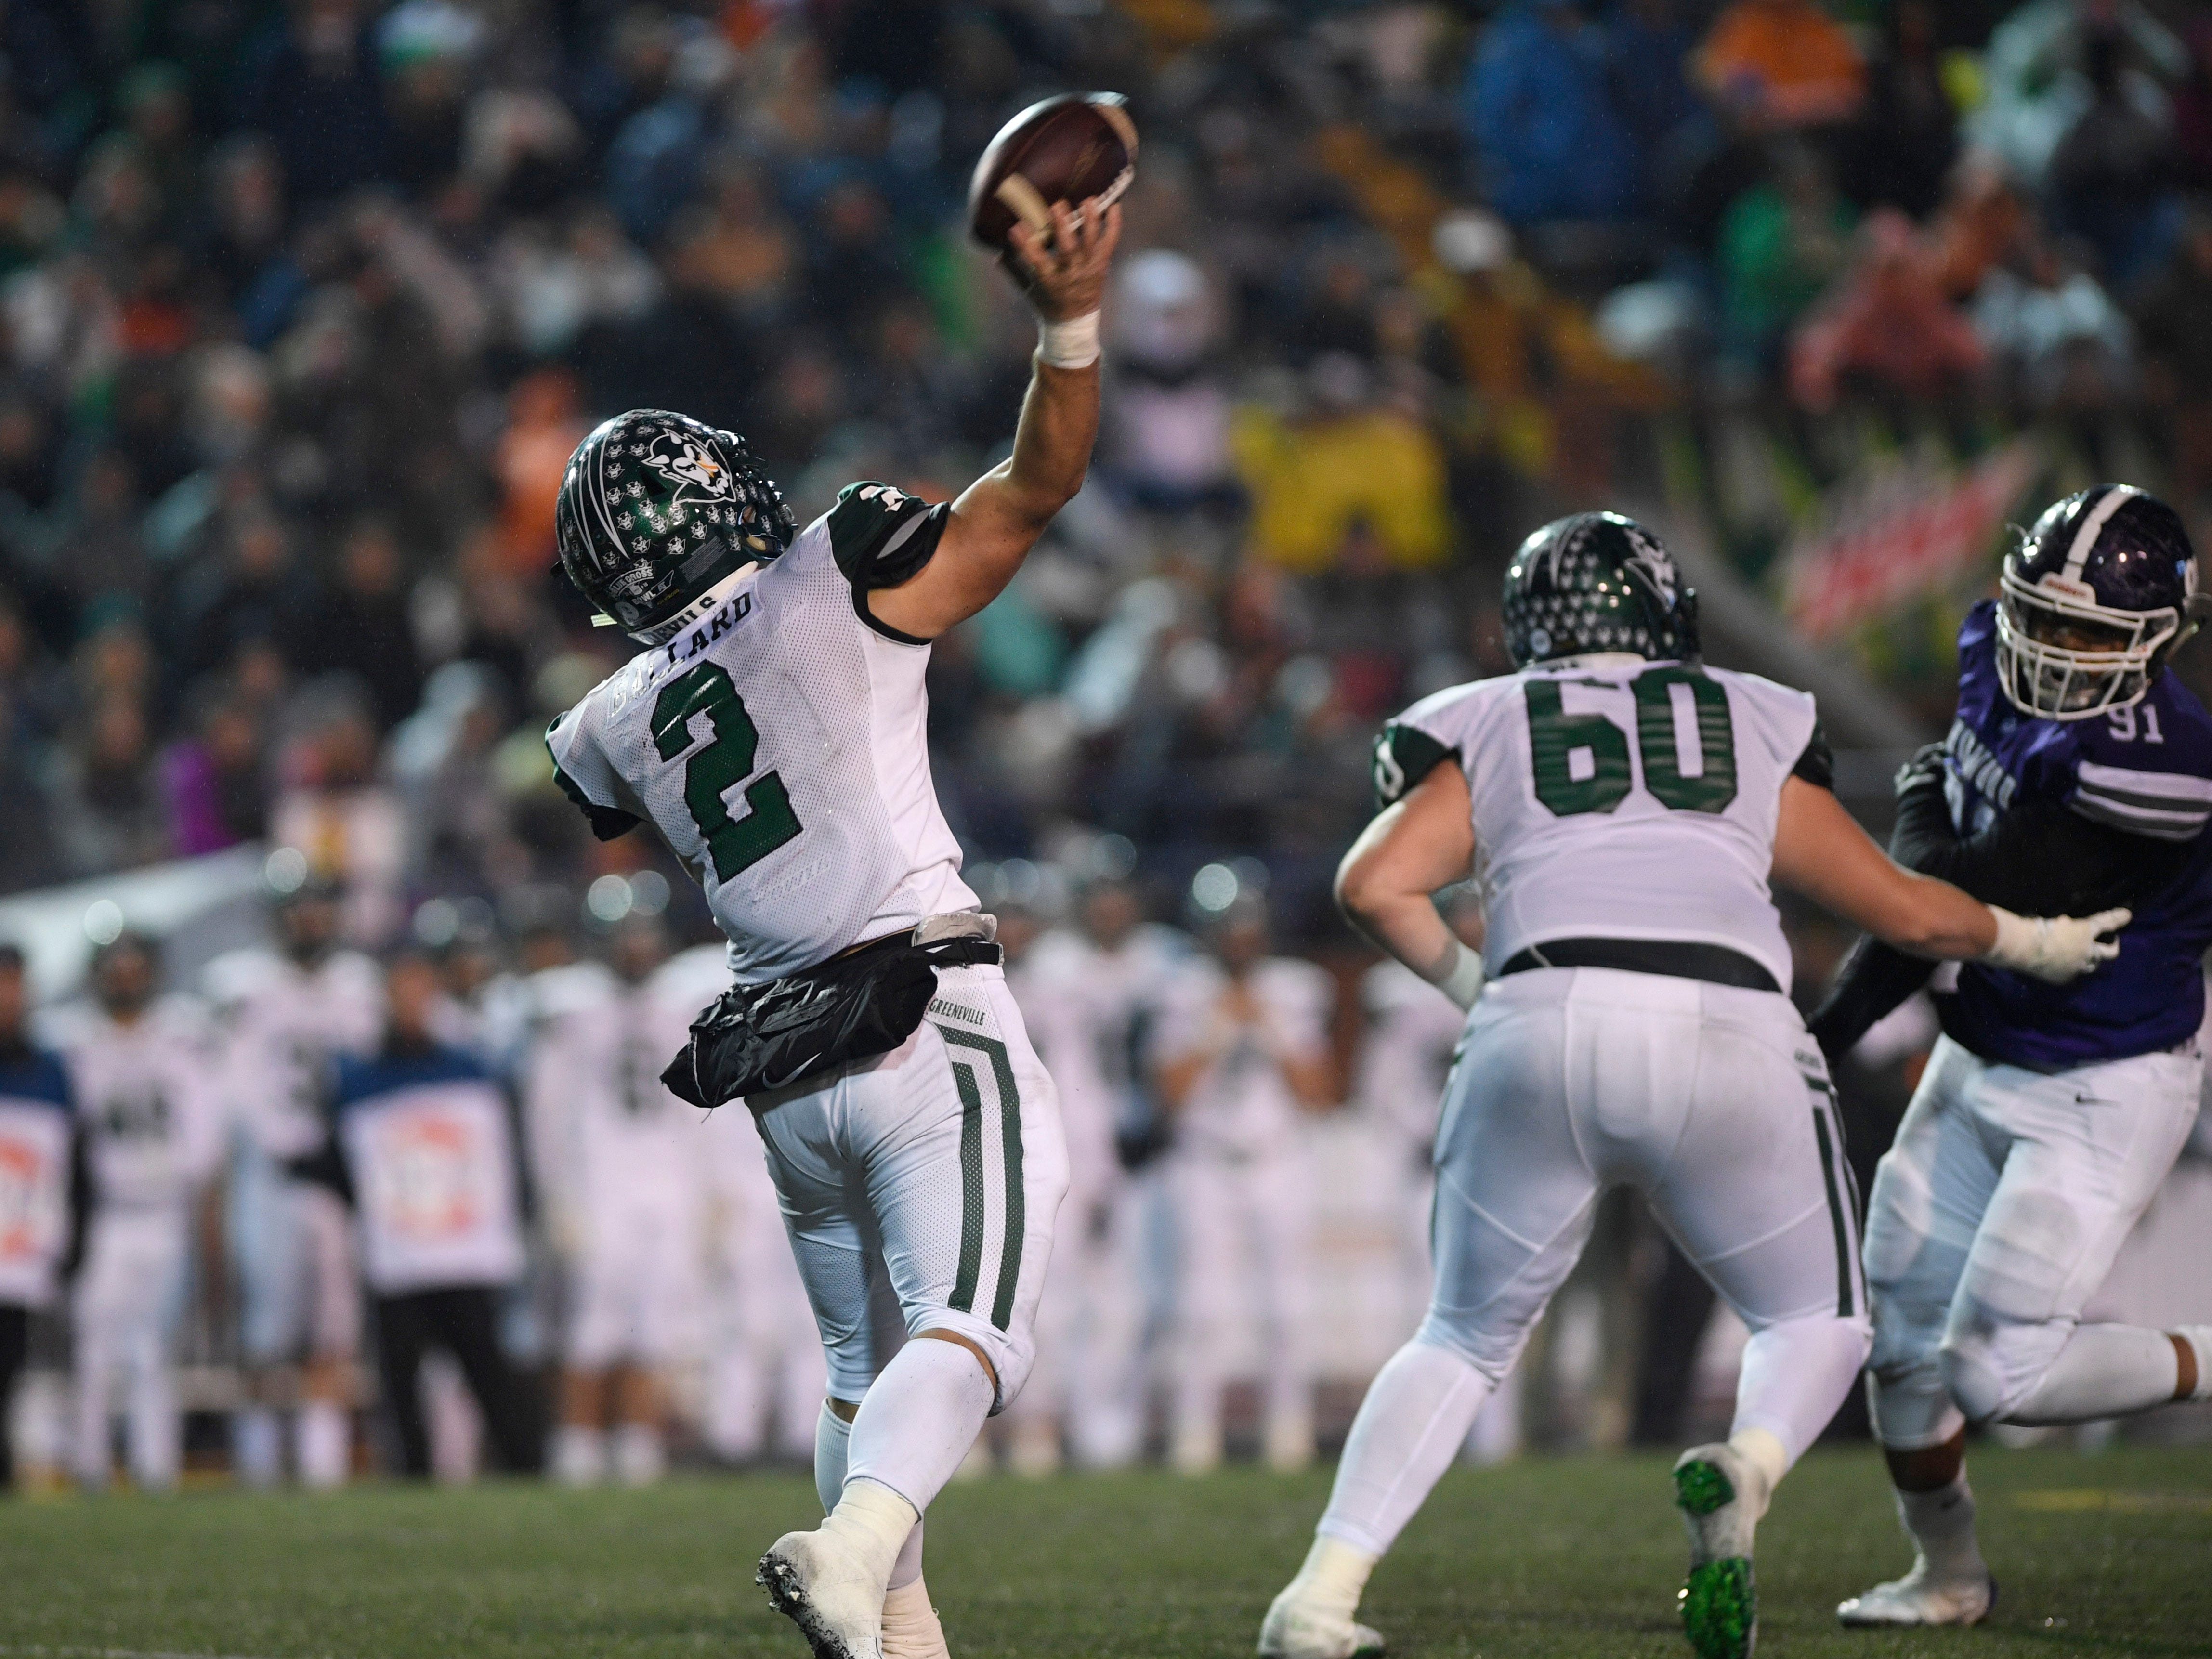 Greeneville's Cade Ballard (2) throws a pass during the second half of the Class 4A BlueCross Bowl state championship at Tennessee Tech's Tucker Stadium in Cookeville, Tenn., on Thursday, Nov. 29, 2018.